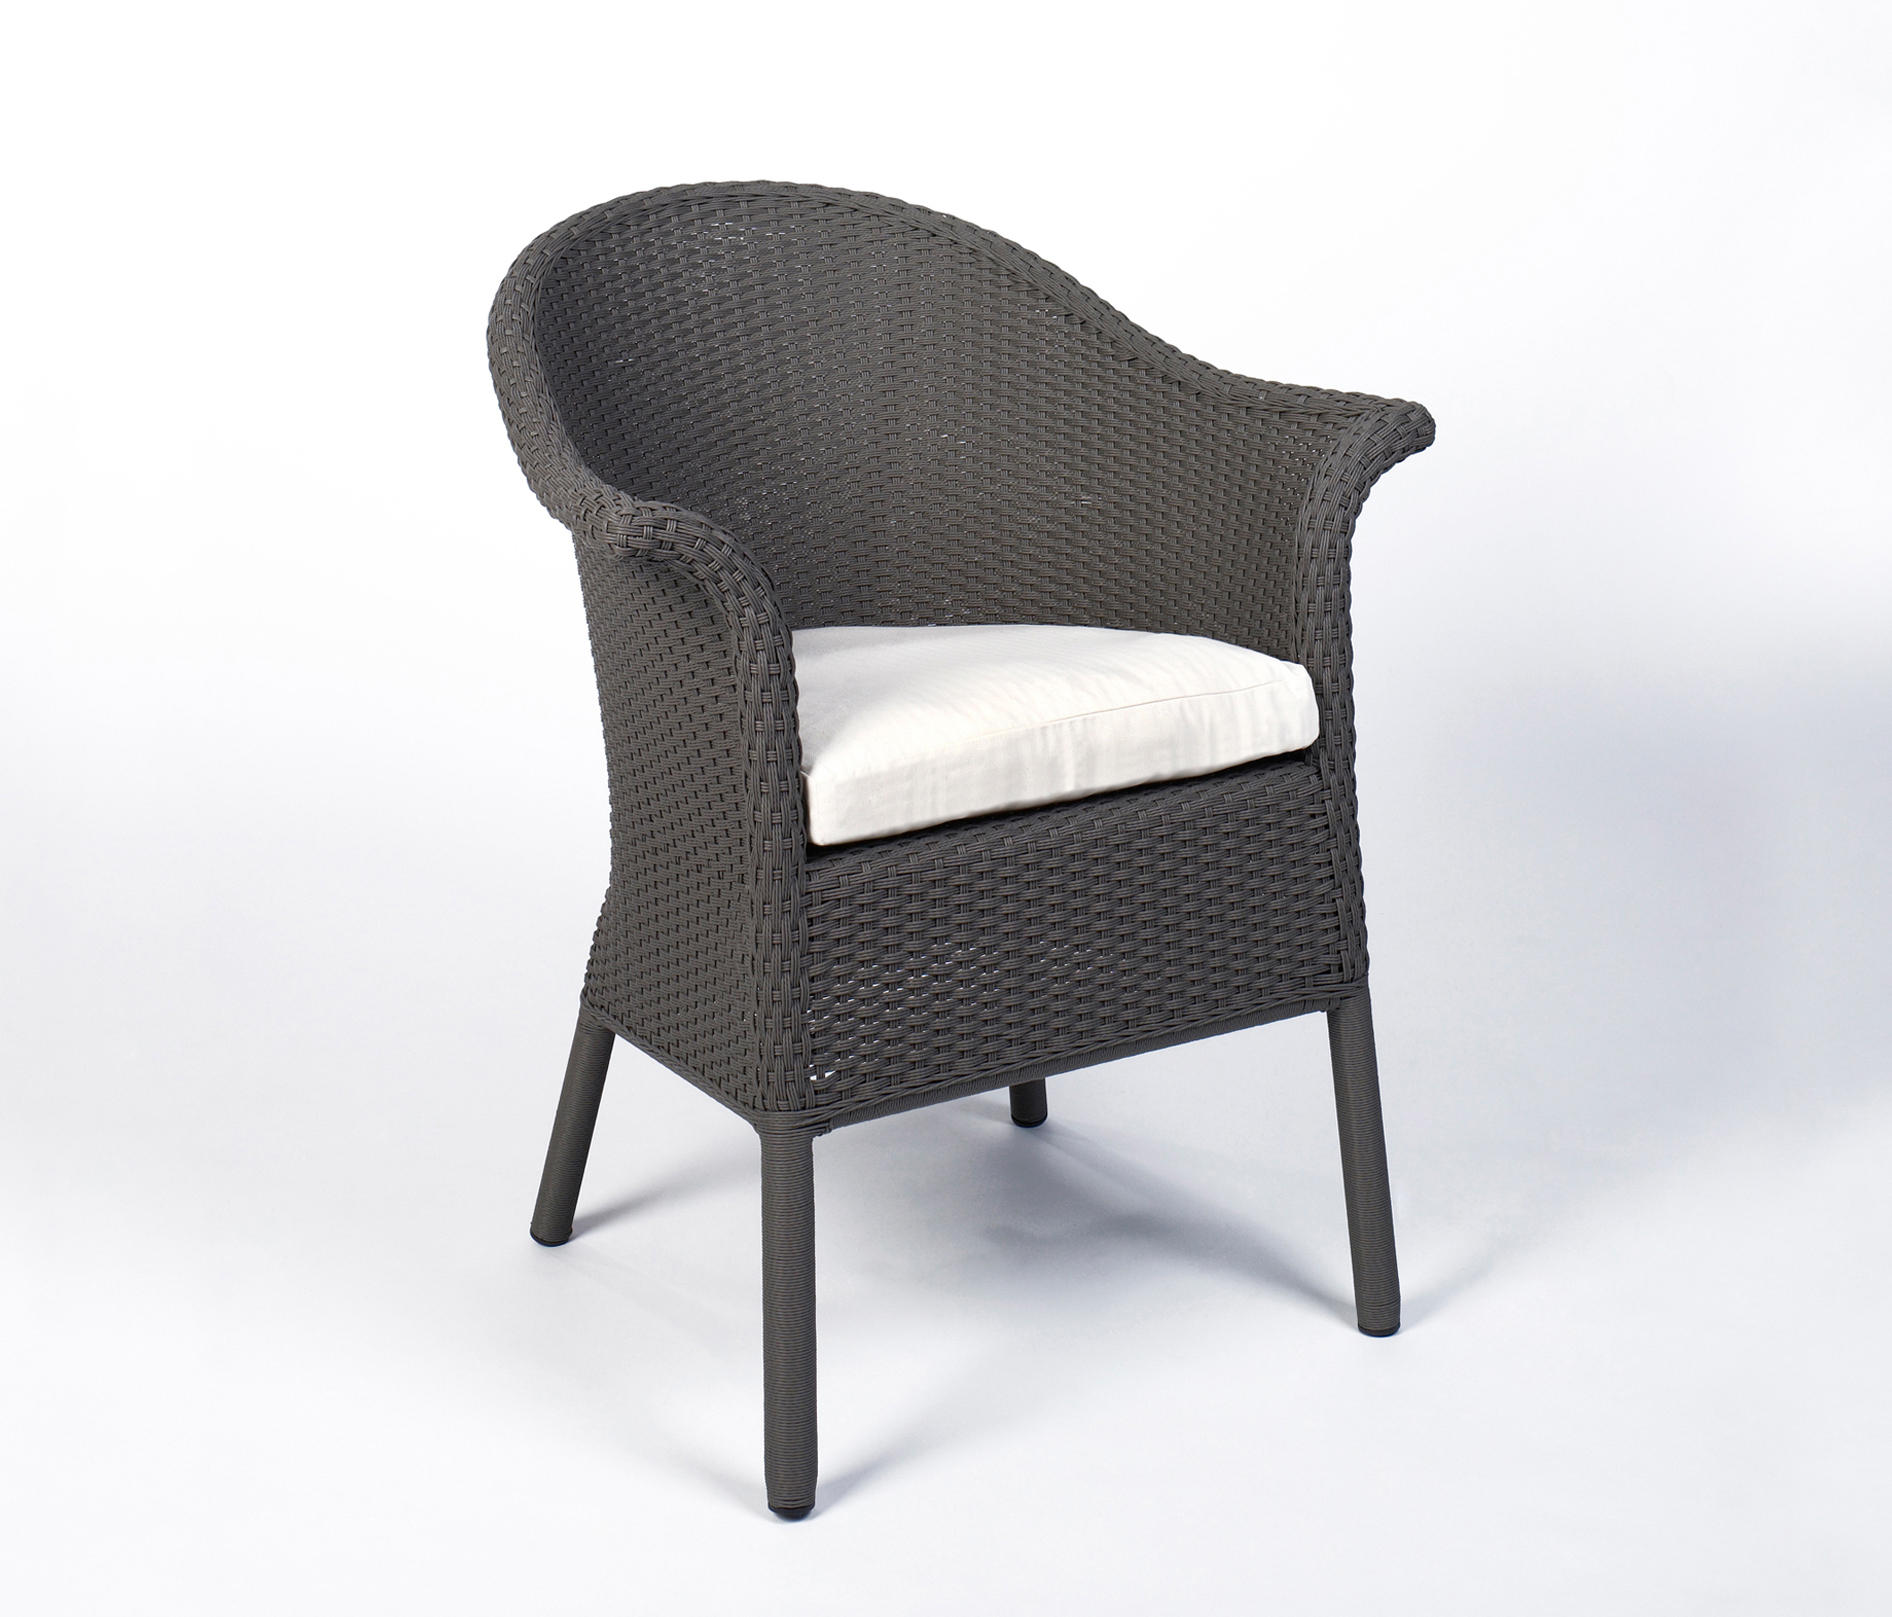 San Remo Armchair By Lambert | Garden Chairs